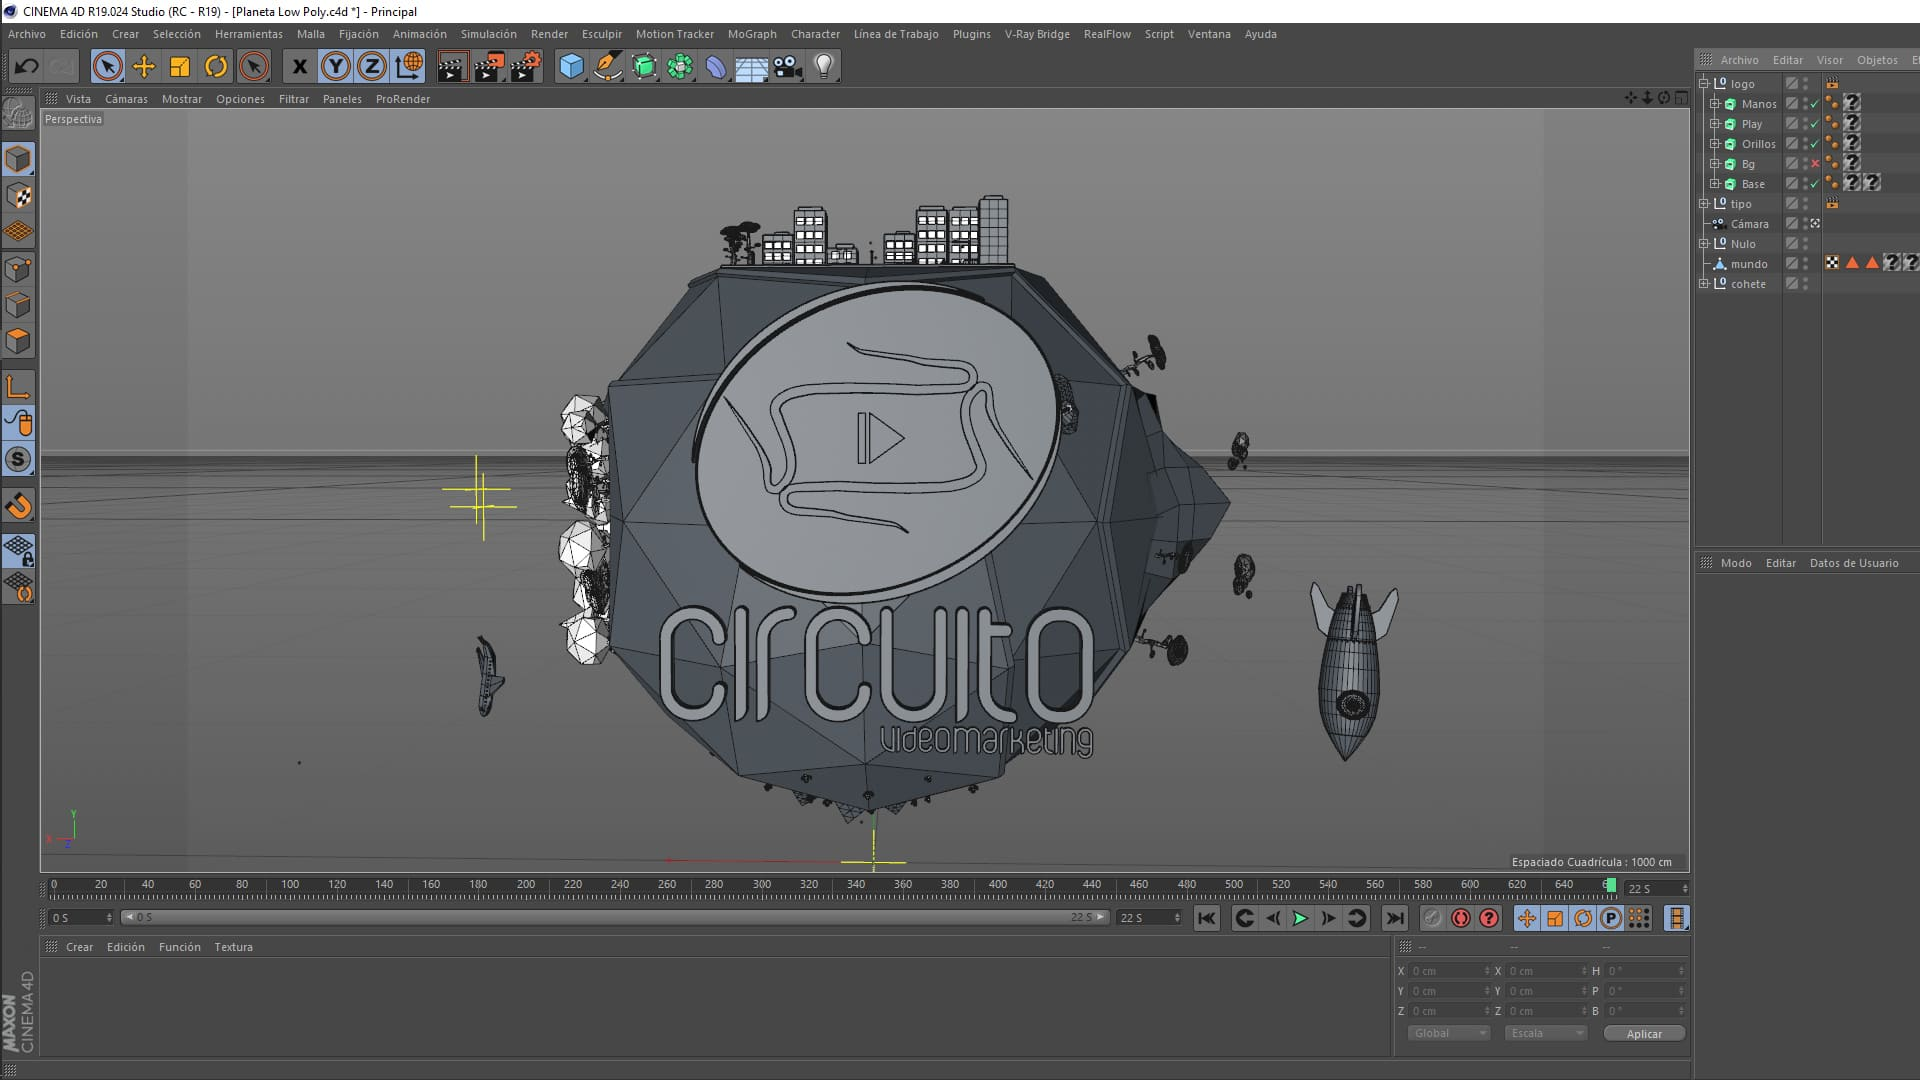 circuito video marketing (3)